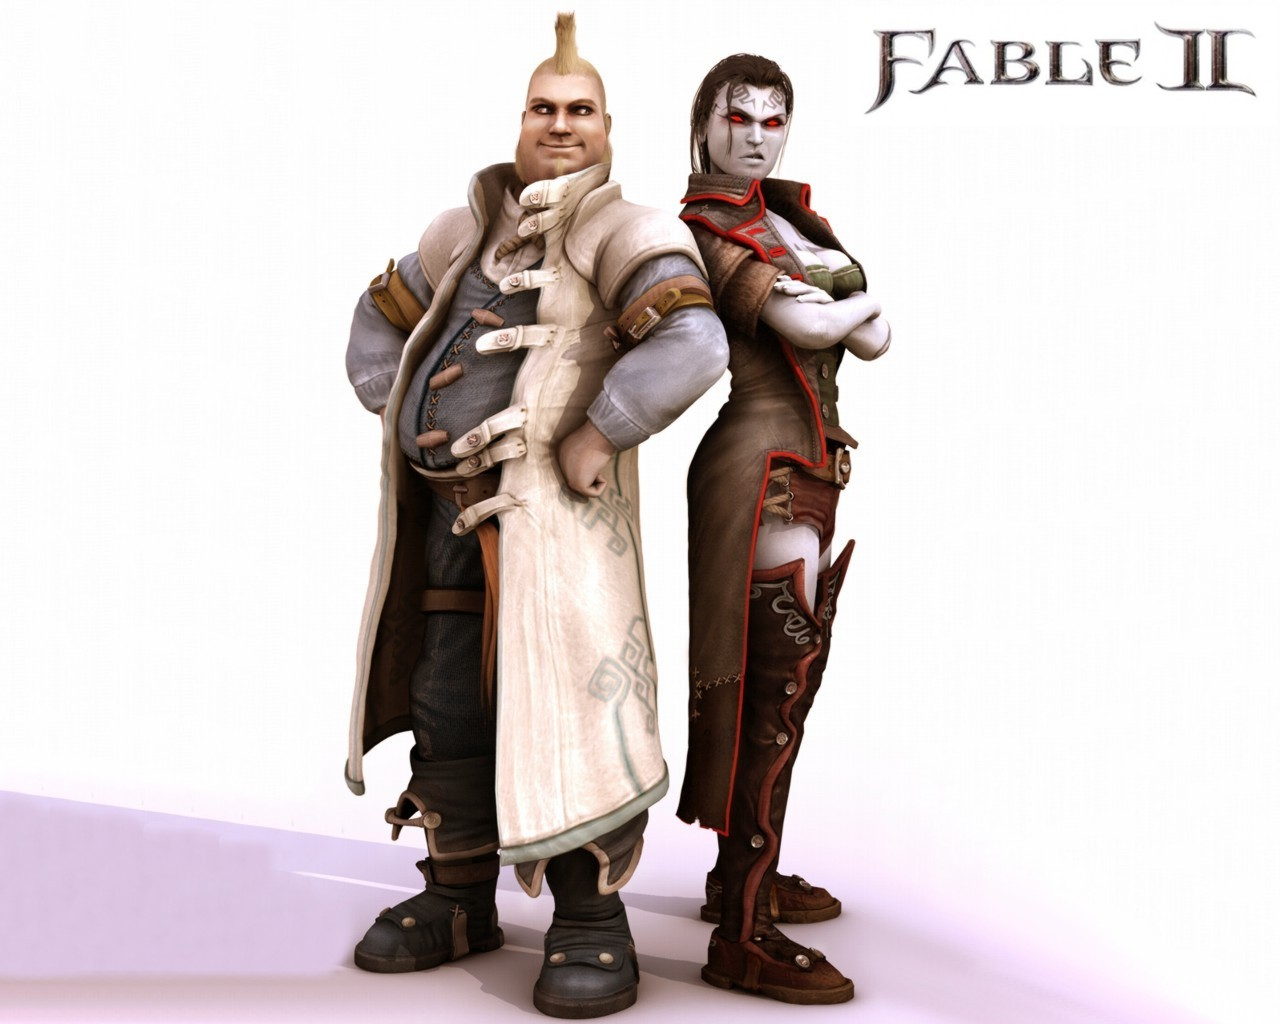 Fable 2 rose henti fucked pics